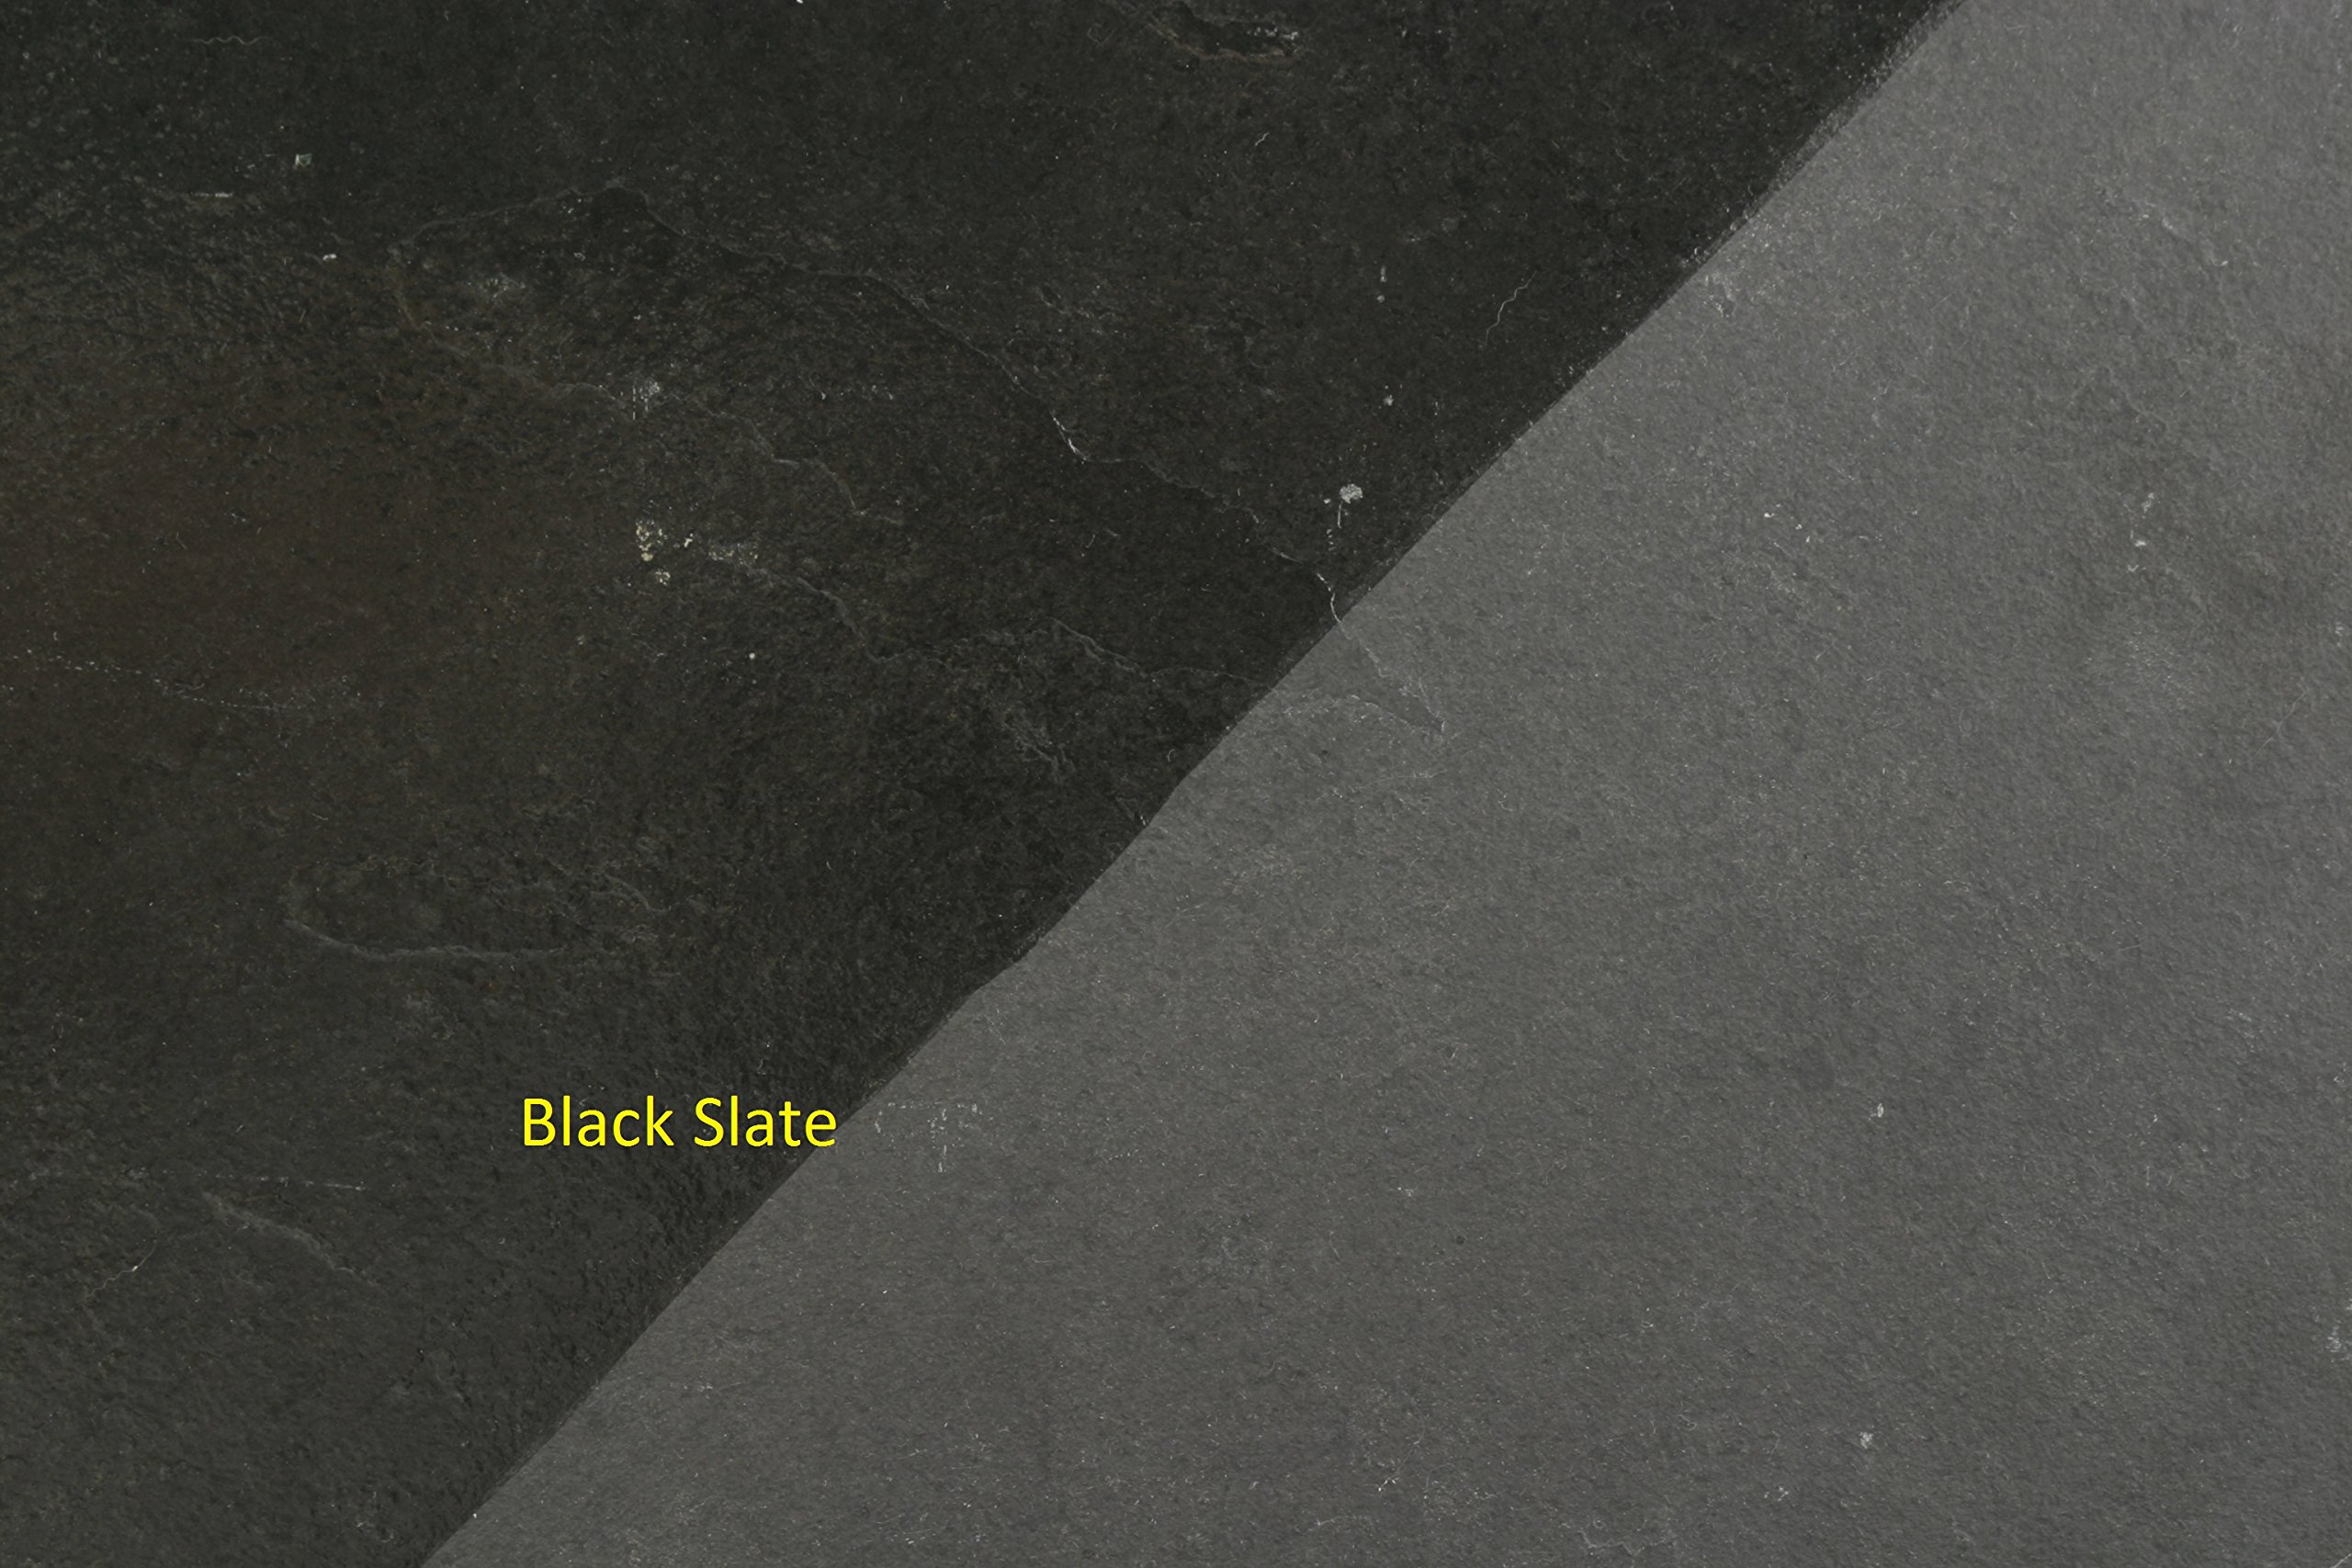 Black Diamond Stoneworks Wet Look Natural Stone Sealer Provides Durable Gloss and Protection to: Slate, Concrete, Brick, Pavers, Sandstone, Driveways, Garage Floors. Interior or Exterior. 2-Gallon by Black Diamond Stoneworks (Image #4)